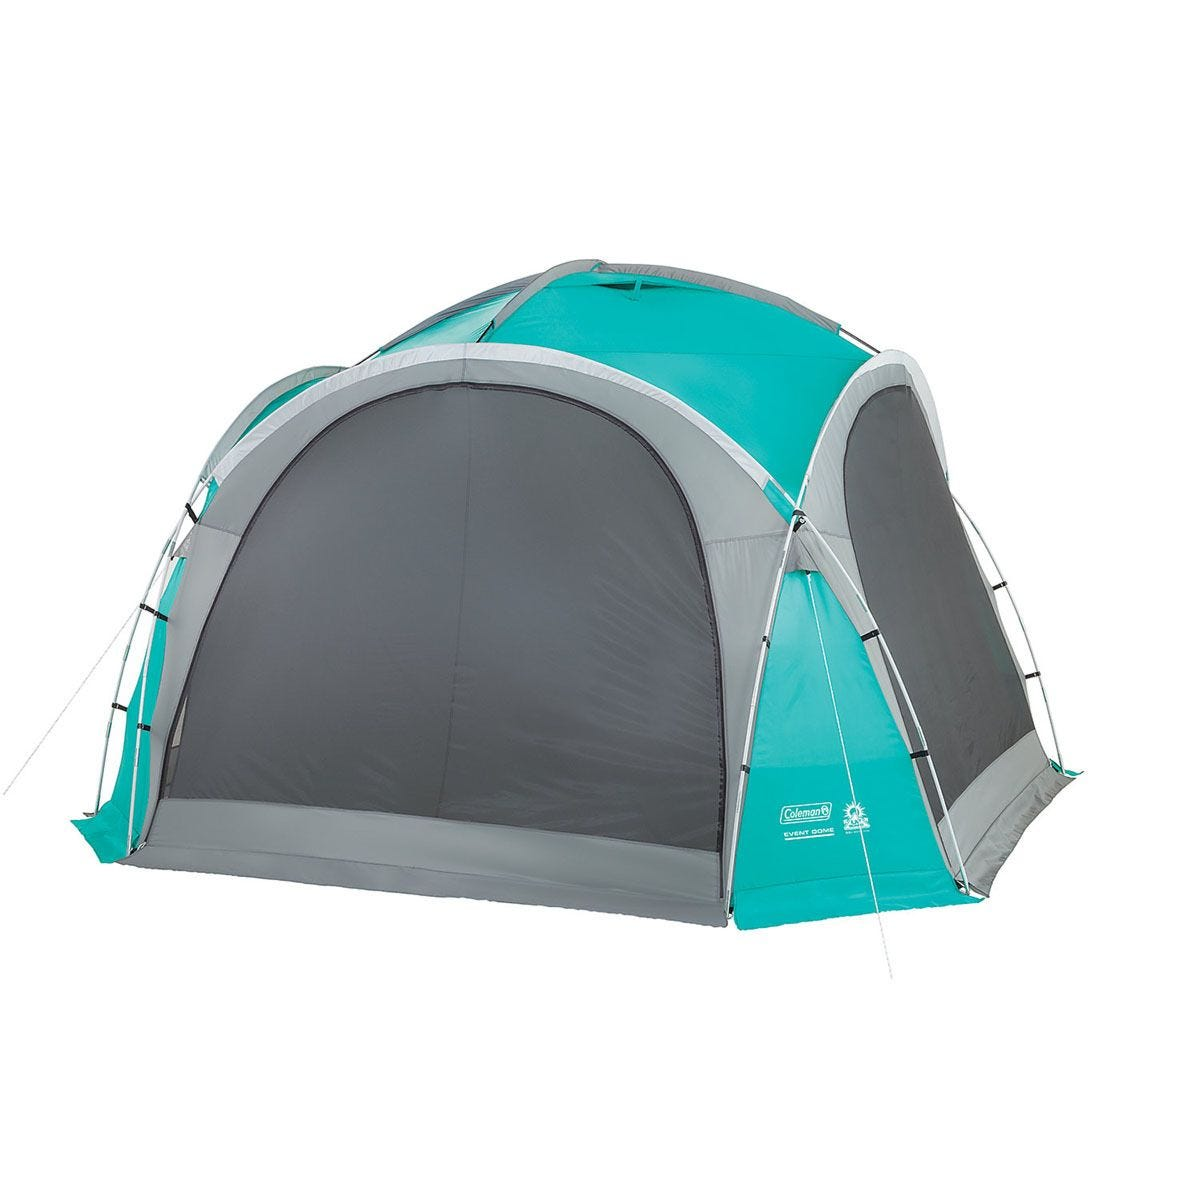 Coleman Gazebo Event Dome Shelter 4.5m with 4 Screen Walls - Teal & Grey